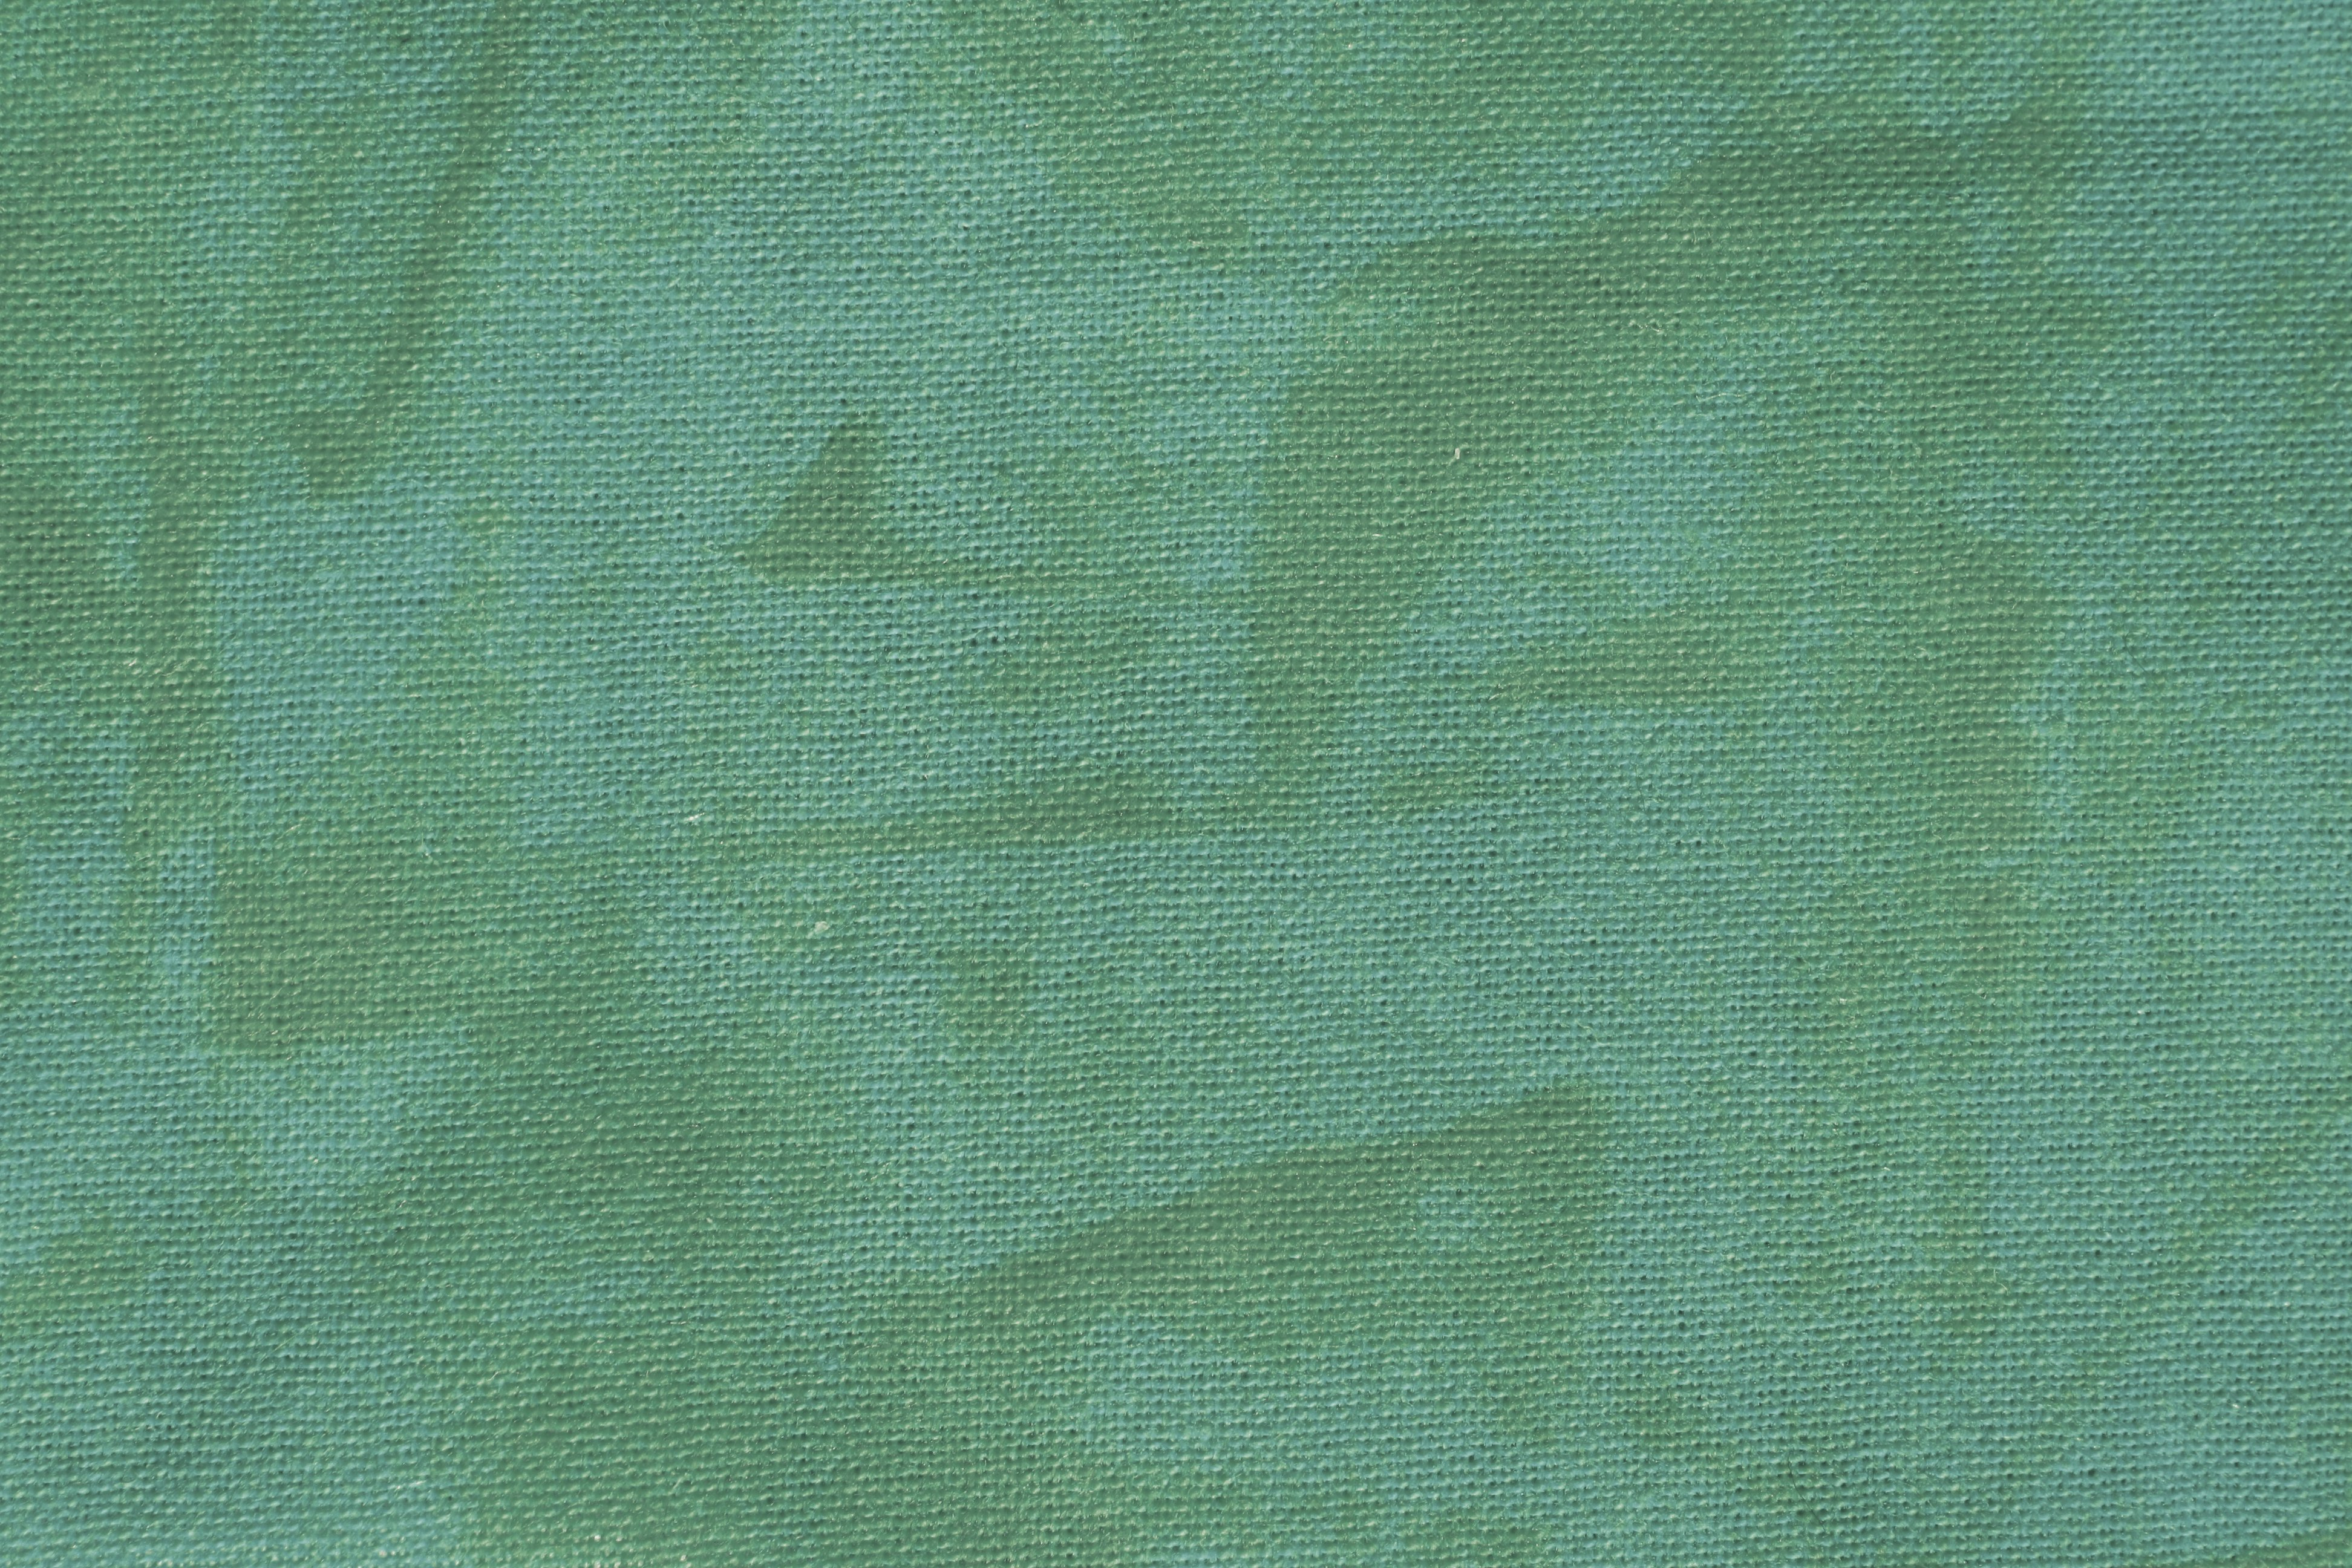 Sage Green Mottled Fabric Texture Picture | Free Photograph | Photos ...